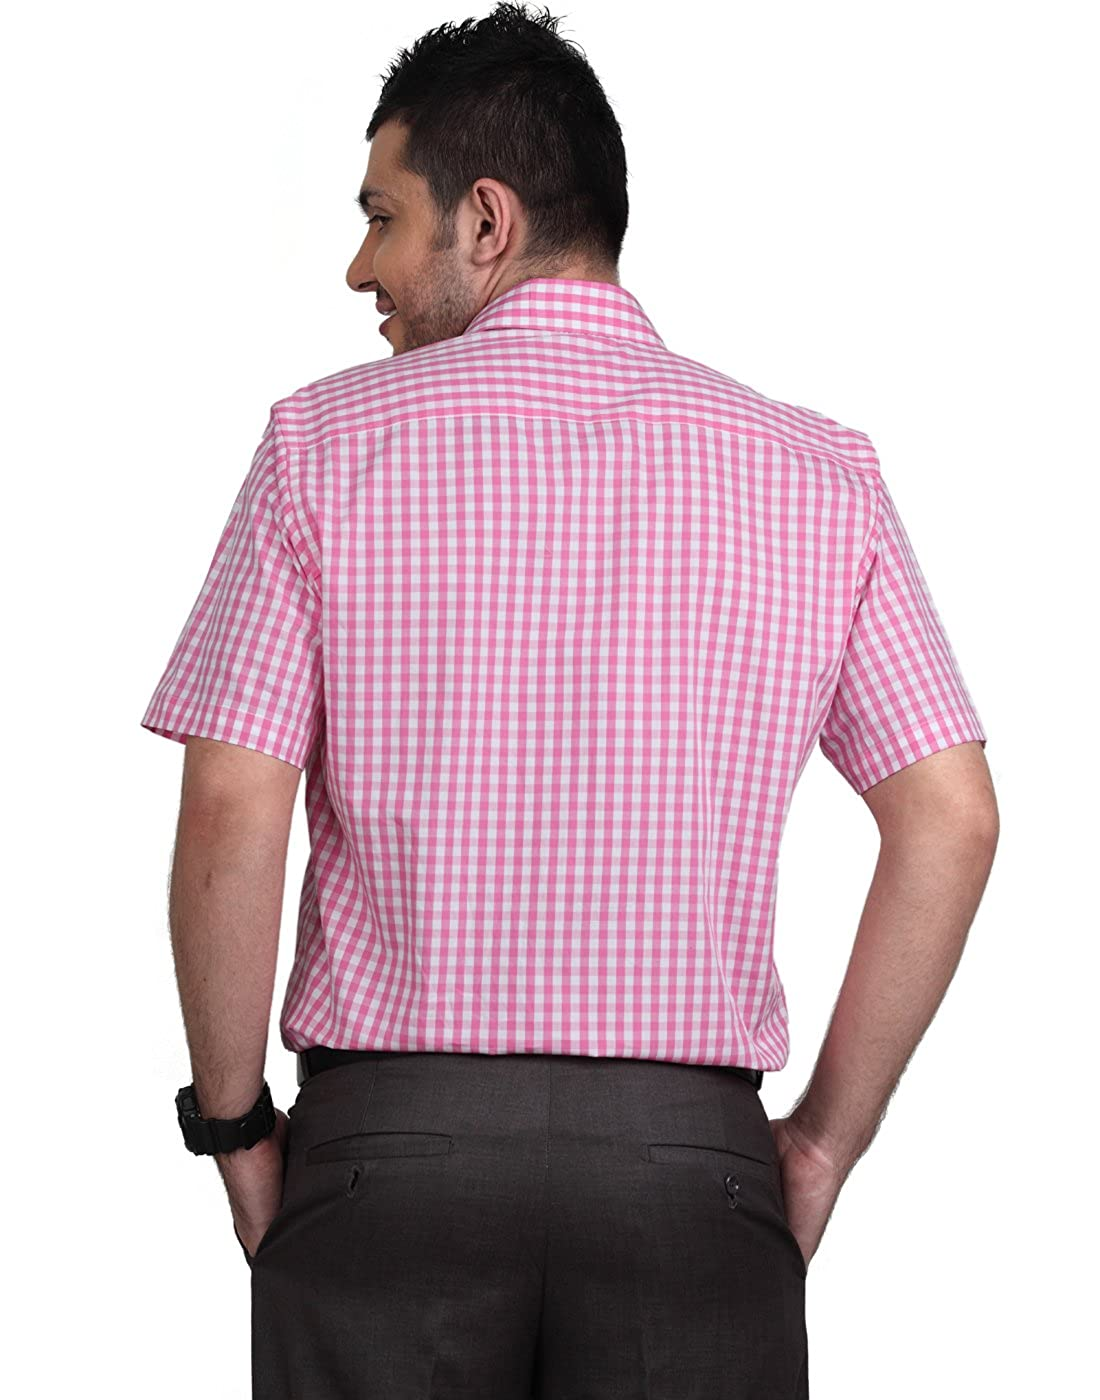 d16c01b10af2f Zeal Men s Shirt Half Sleeve Cotton Checkered Formal Pink and White   Amazon.in  Clothing   Accessories